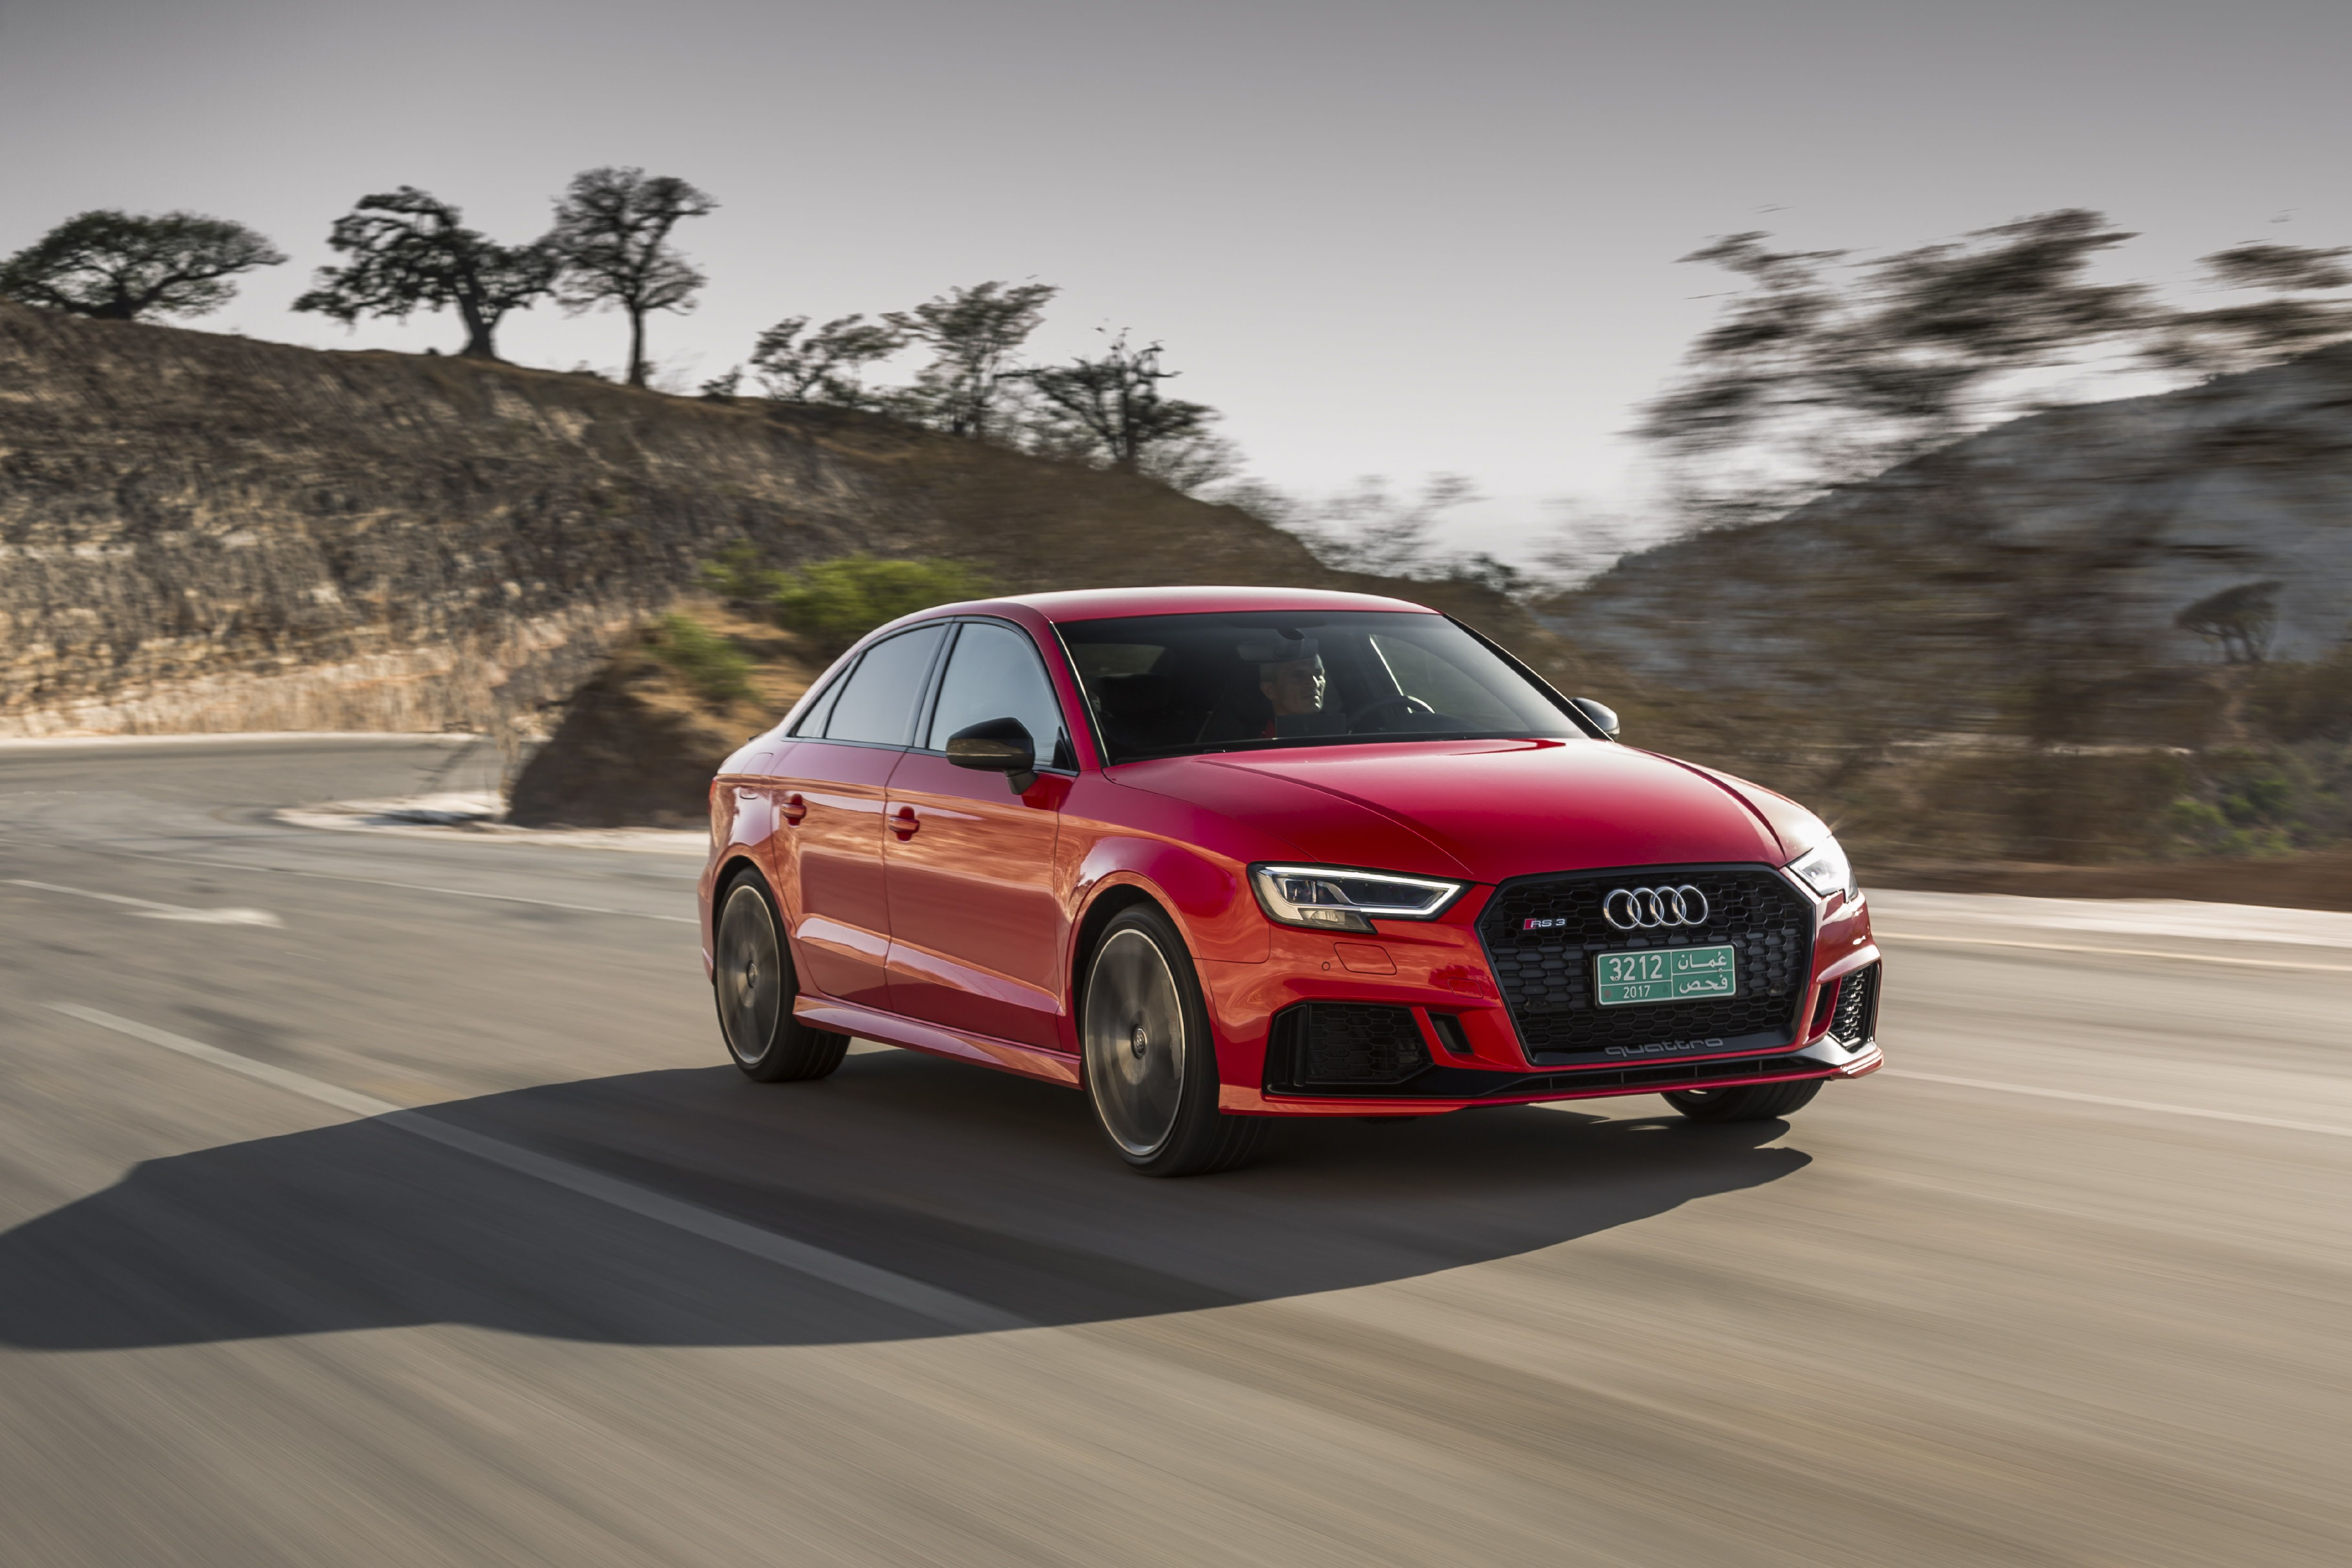 2020 Audi Rs3 Review Pricing And Specs